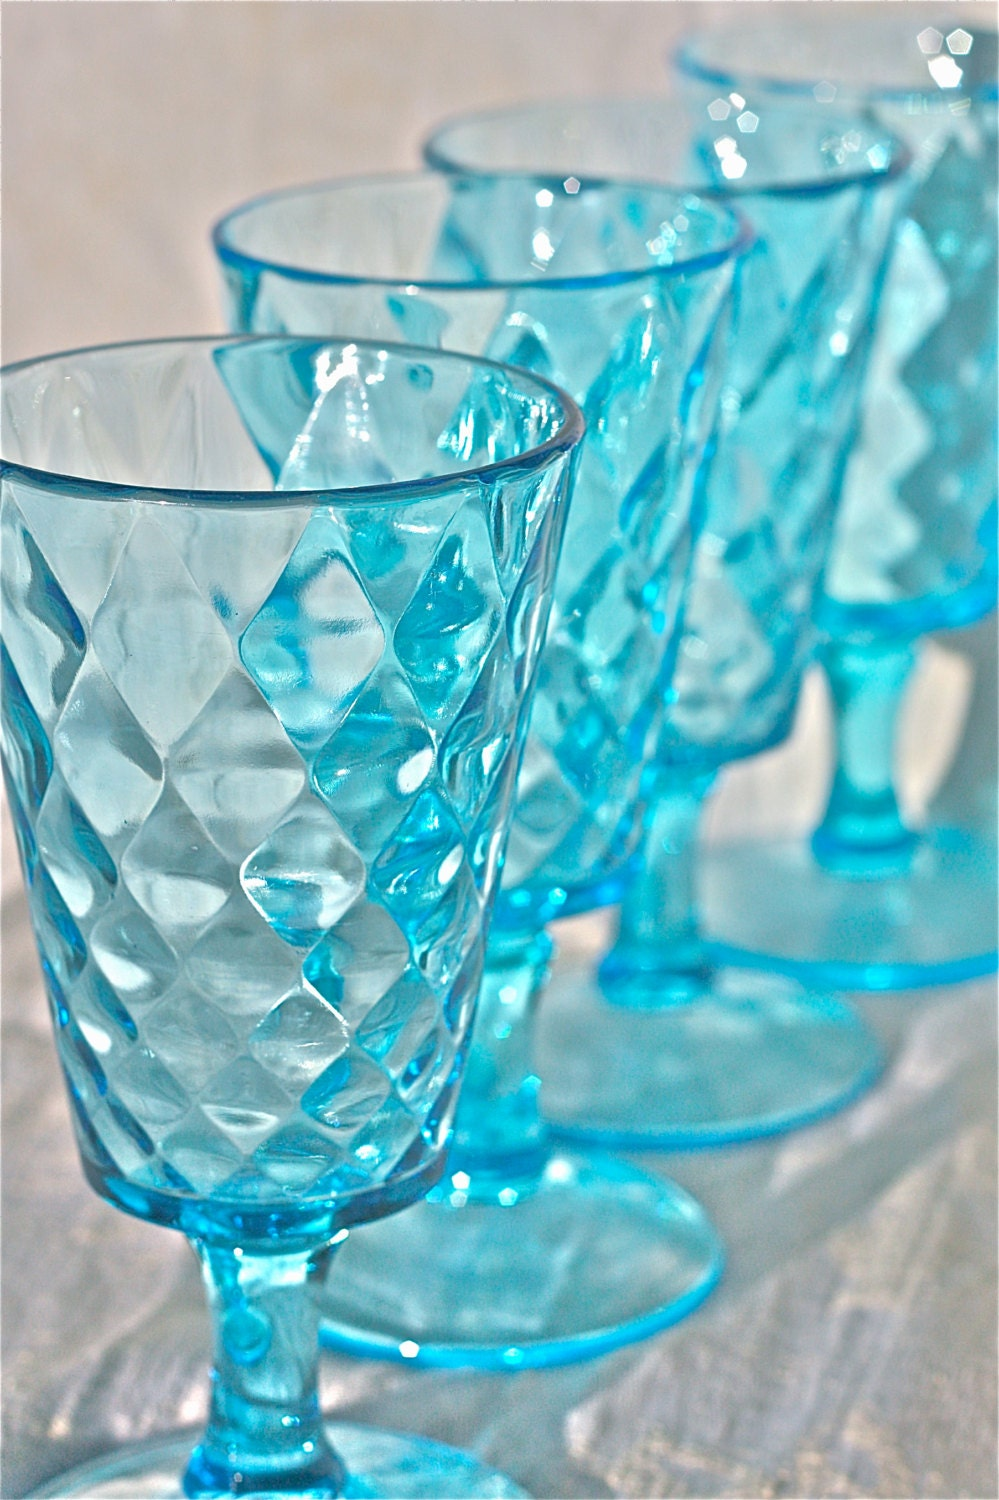 Aquamarine depression glass quilted diamond pattern-water